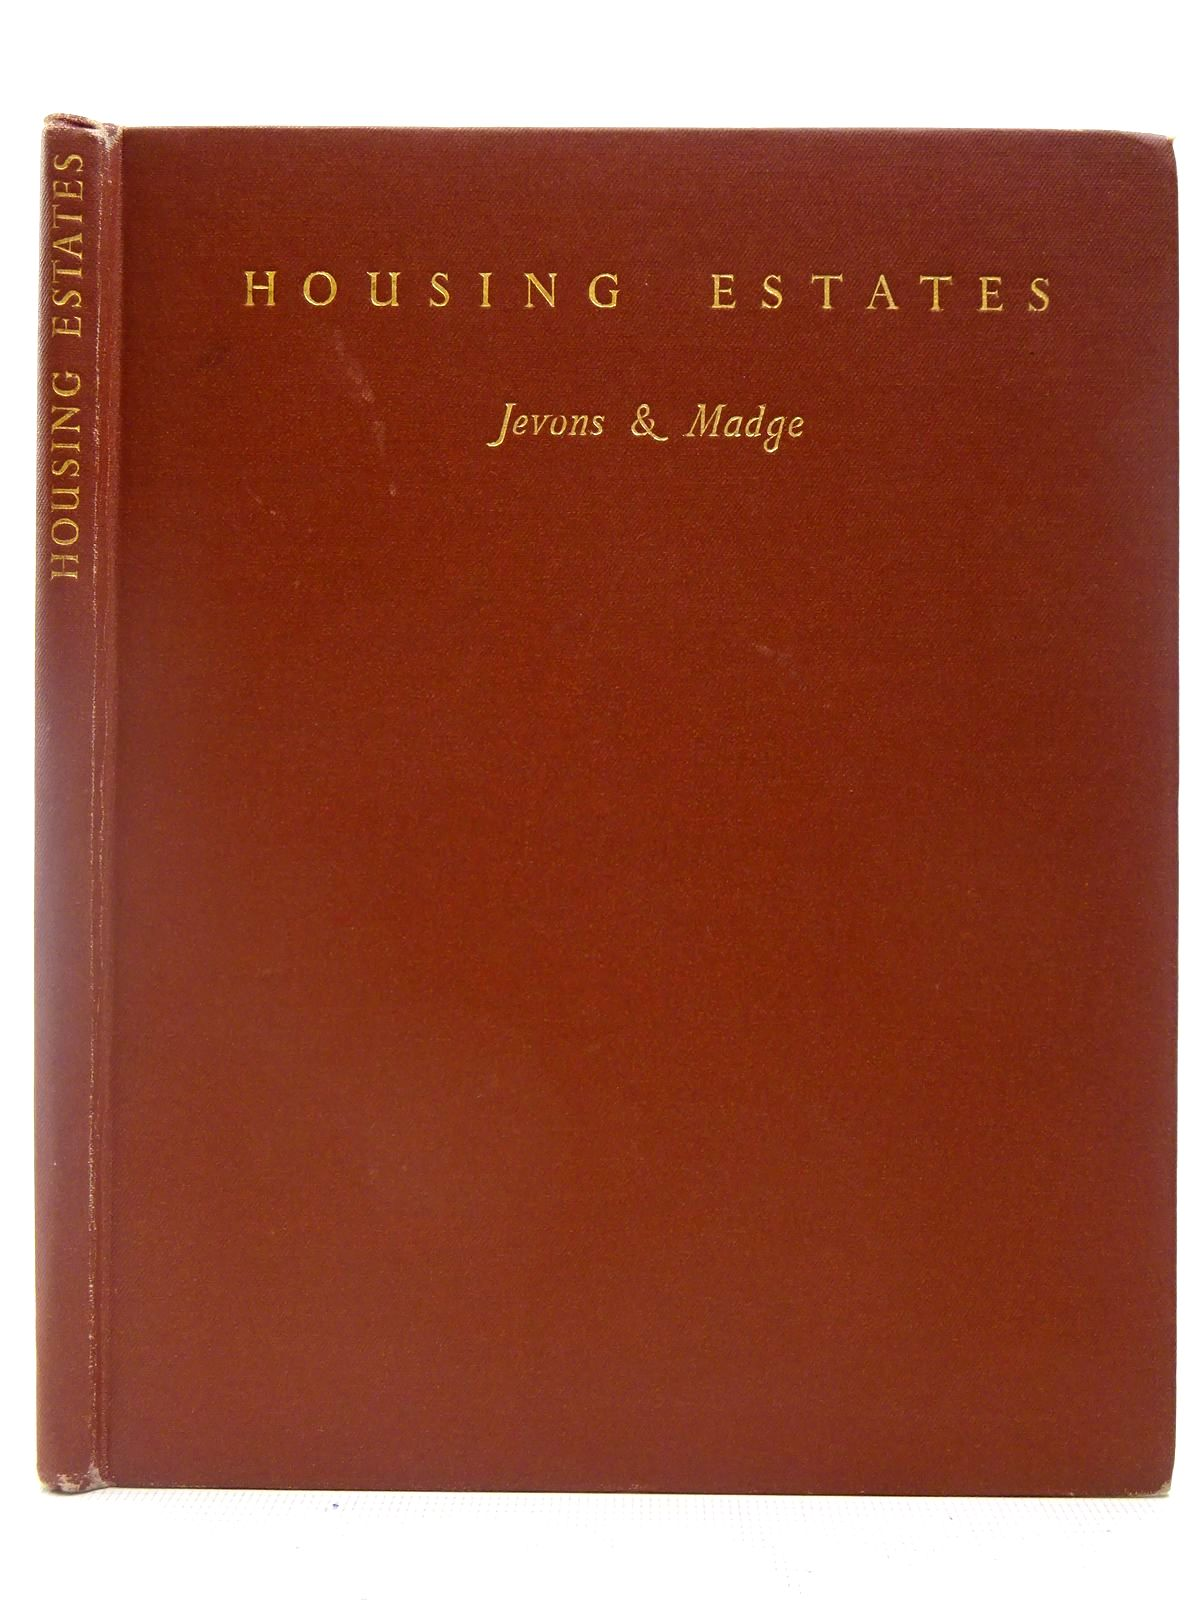 Photo of HOUSING ESTATES written by Jevons, Rosamond Madge, John published by J.W. Arrowsmith Ltd. (STOCK CODE: 2127012)  for sale by Stella & Rose's Books